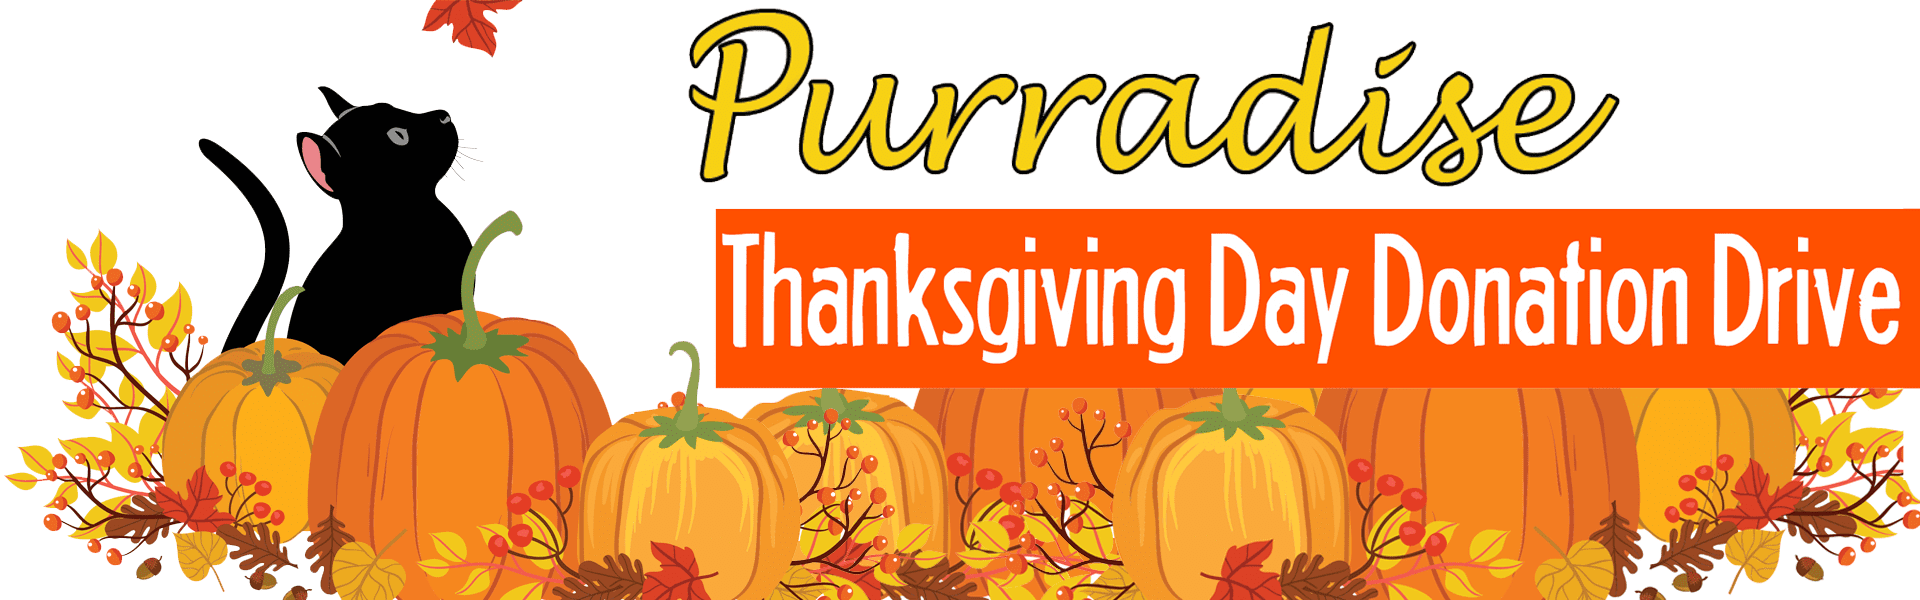 Thanksgiving Donation Drive at Purradise